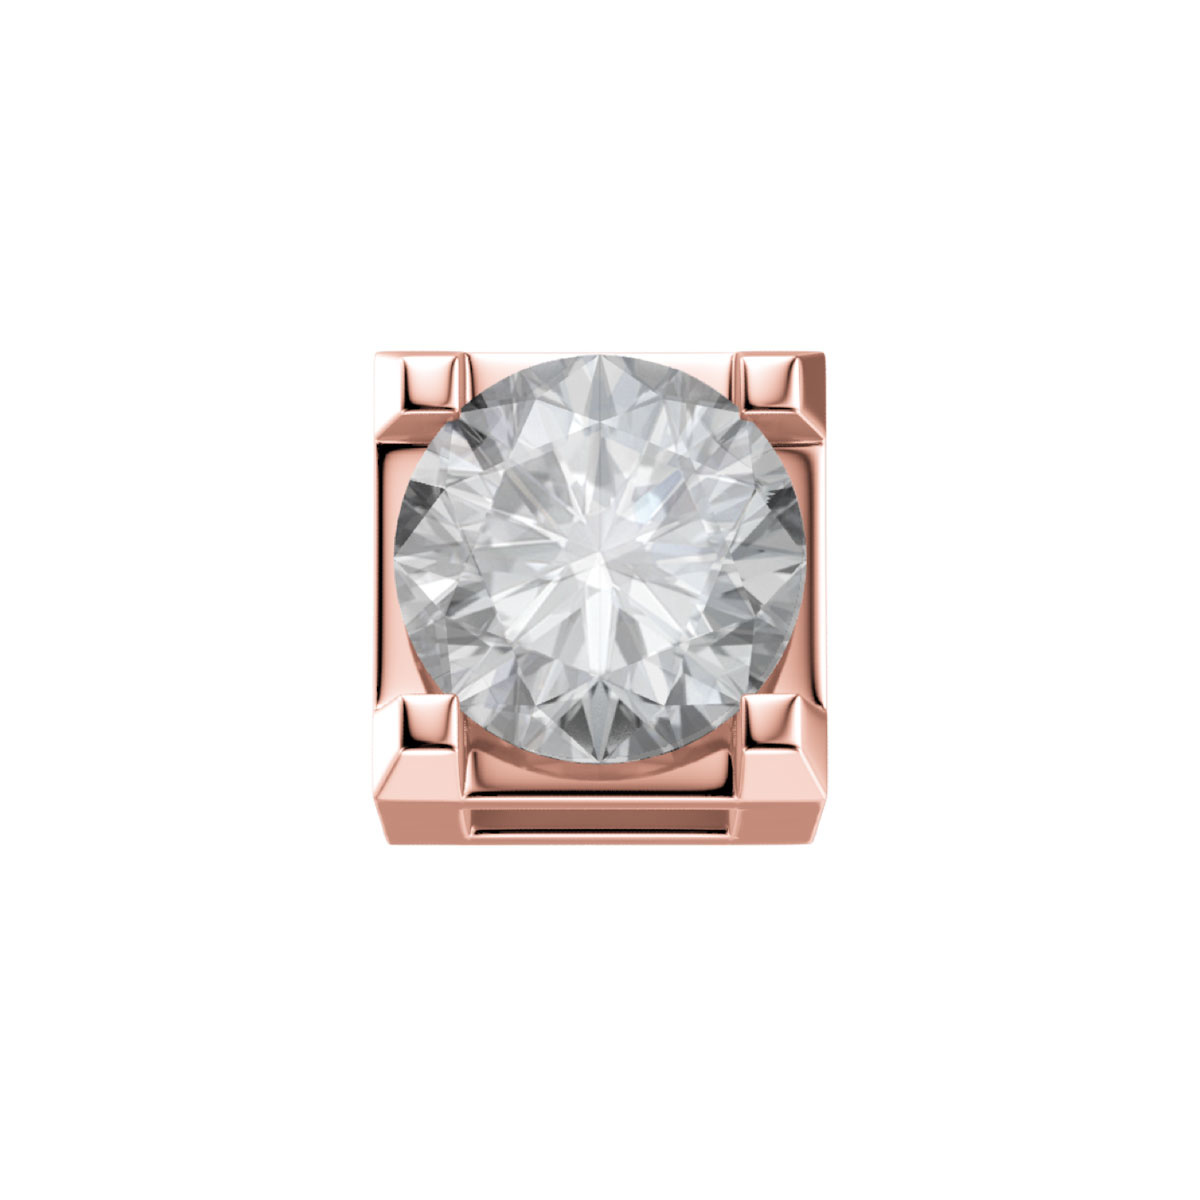 Donna Oro Elements Armband DCHF3304.005